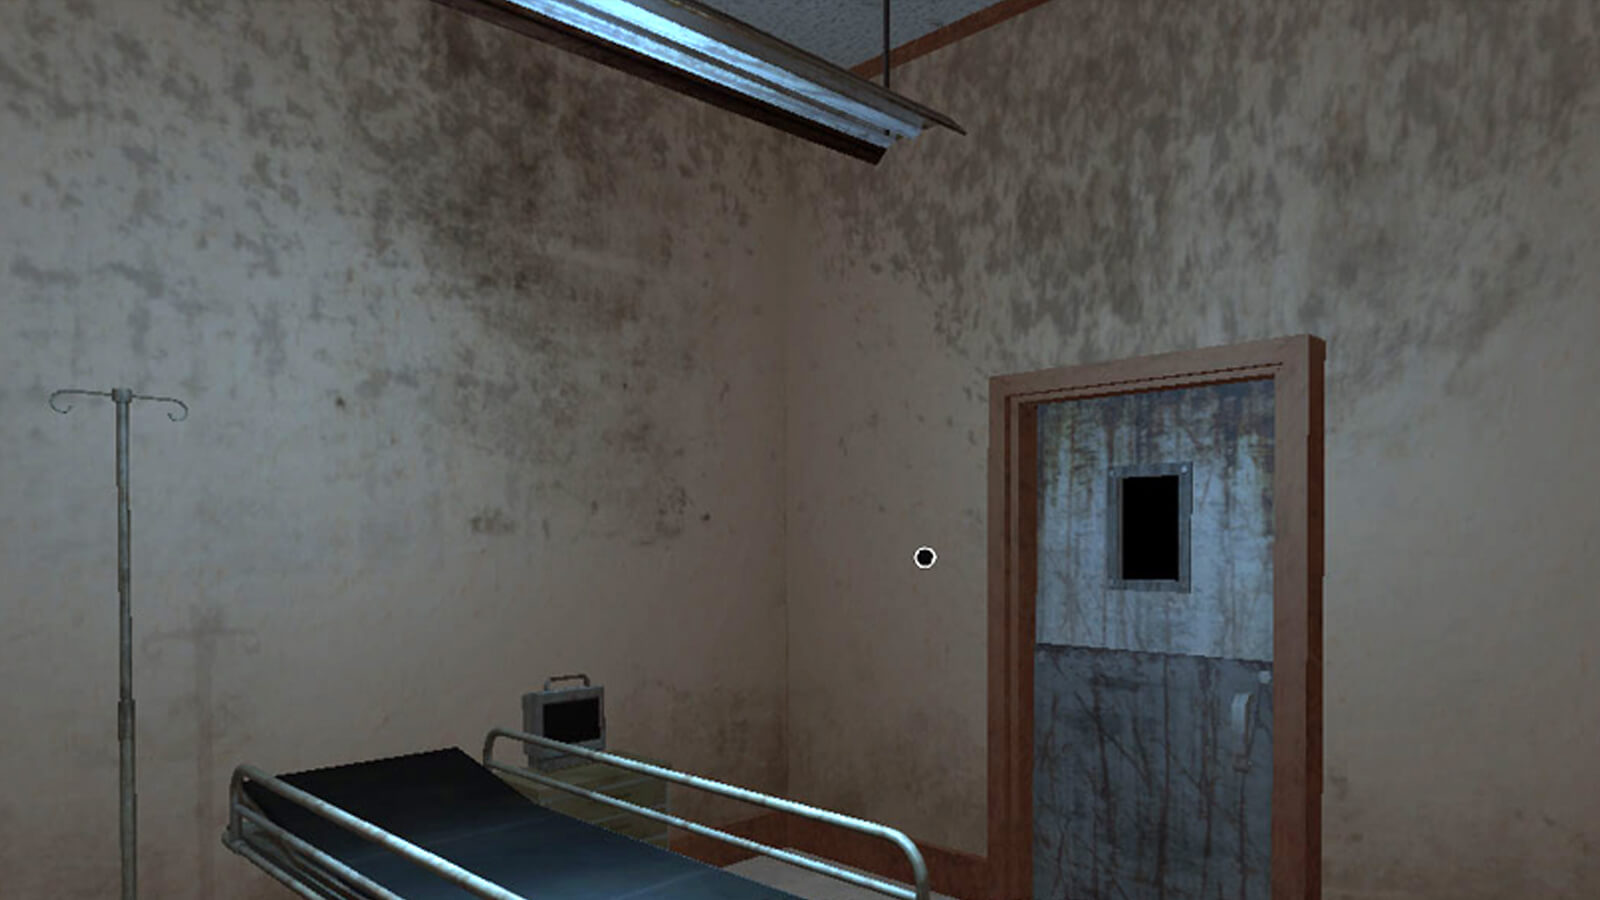 A dirty, bare hospital room with a gurney and naked lighting fixture above